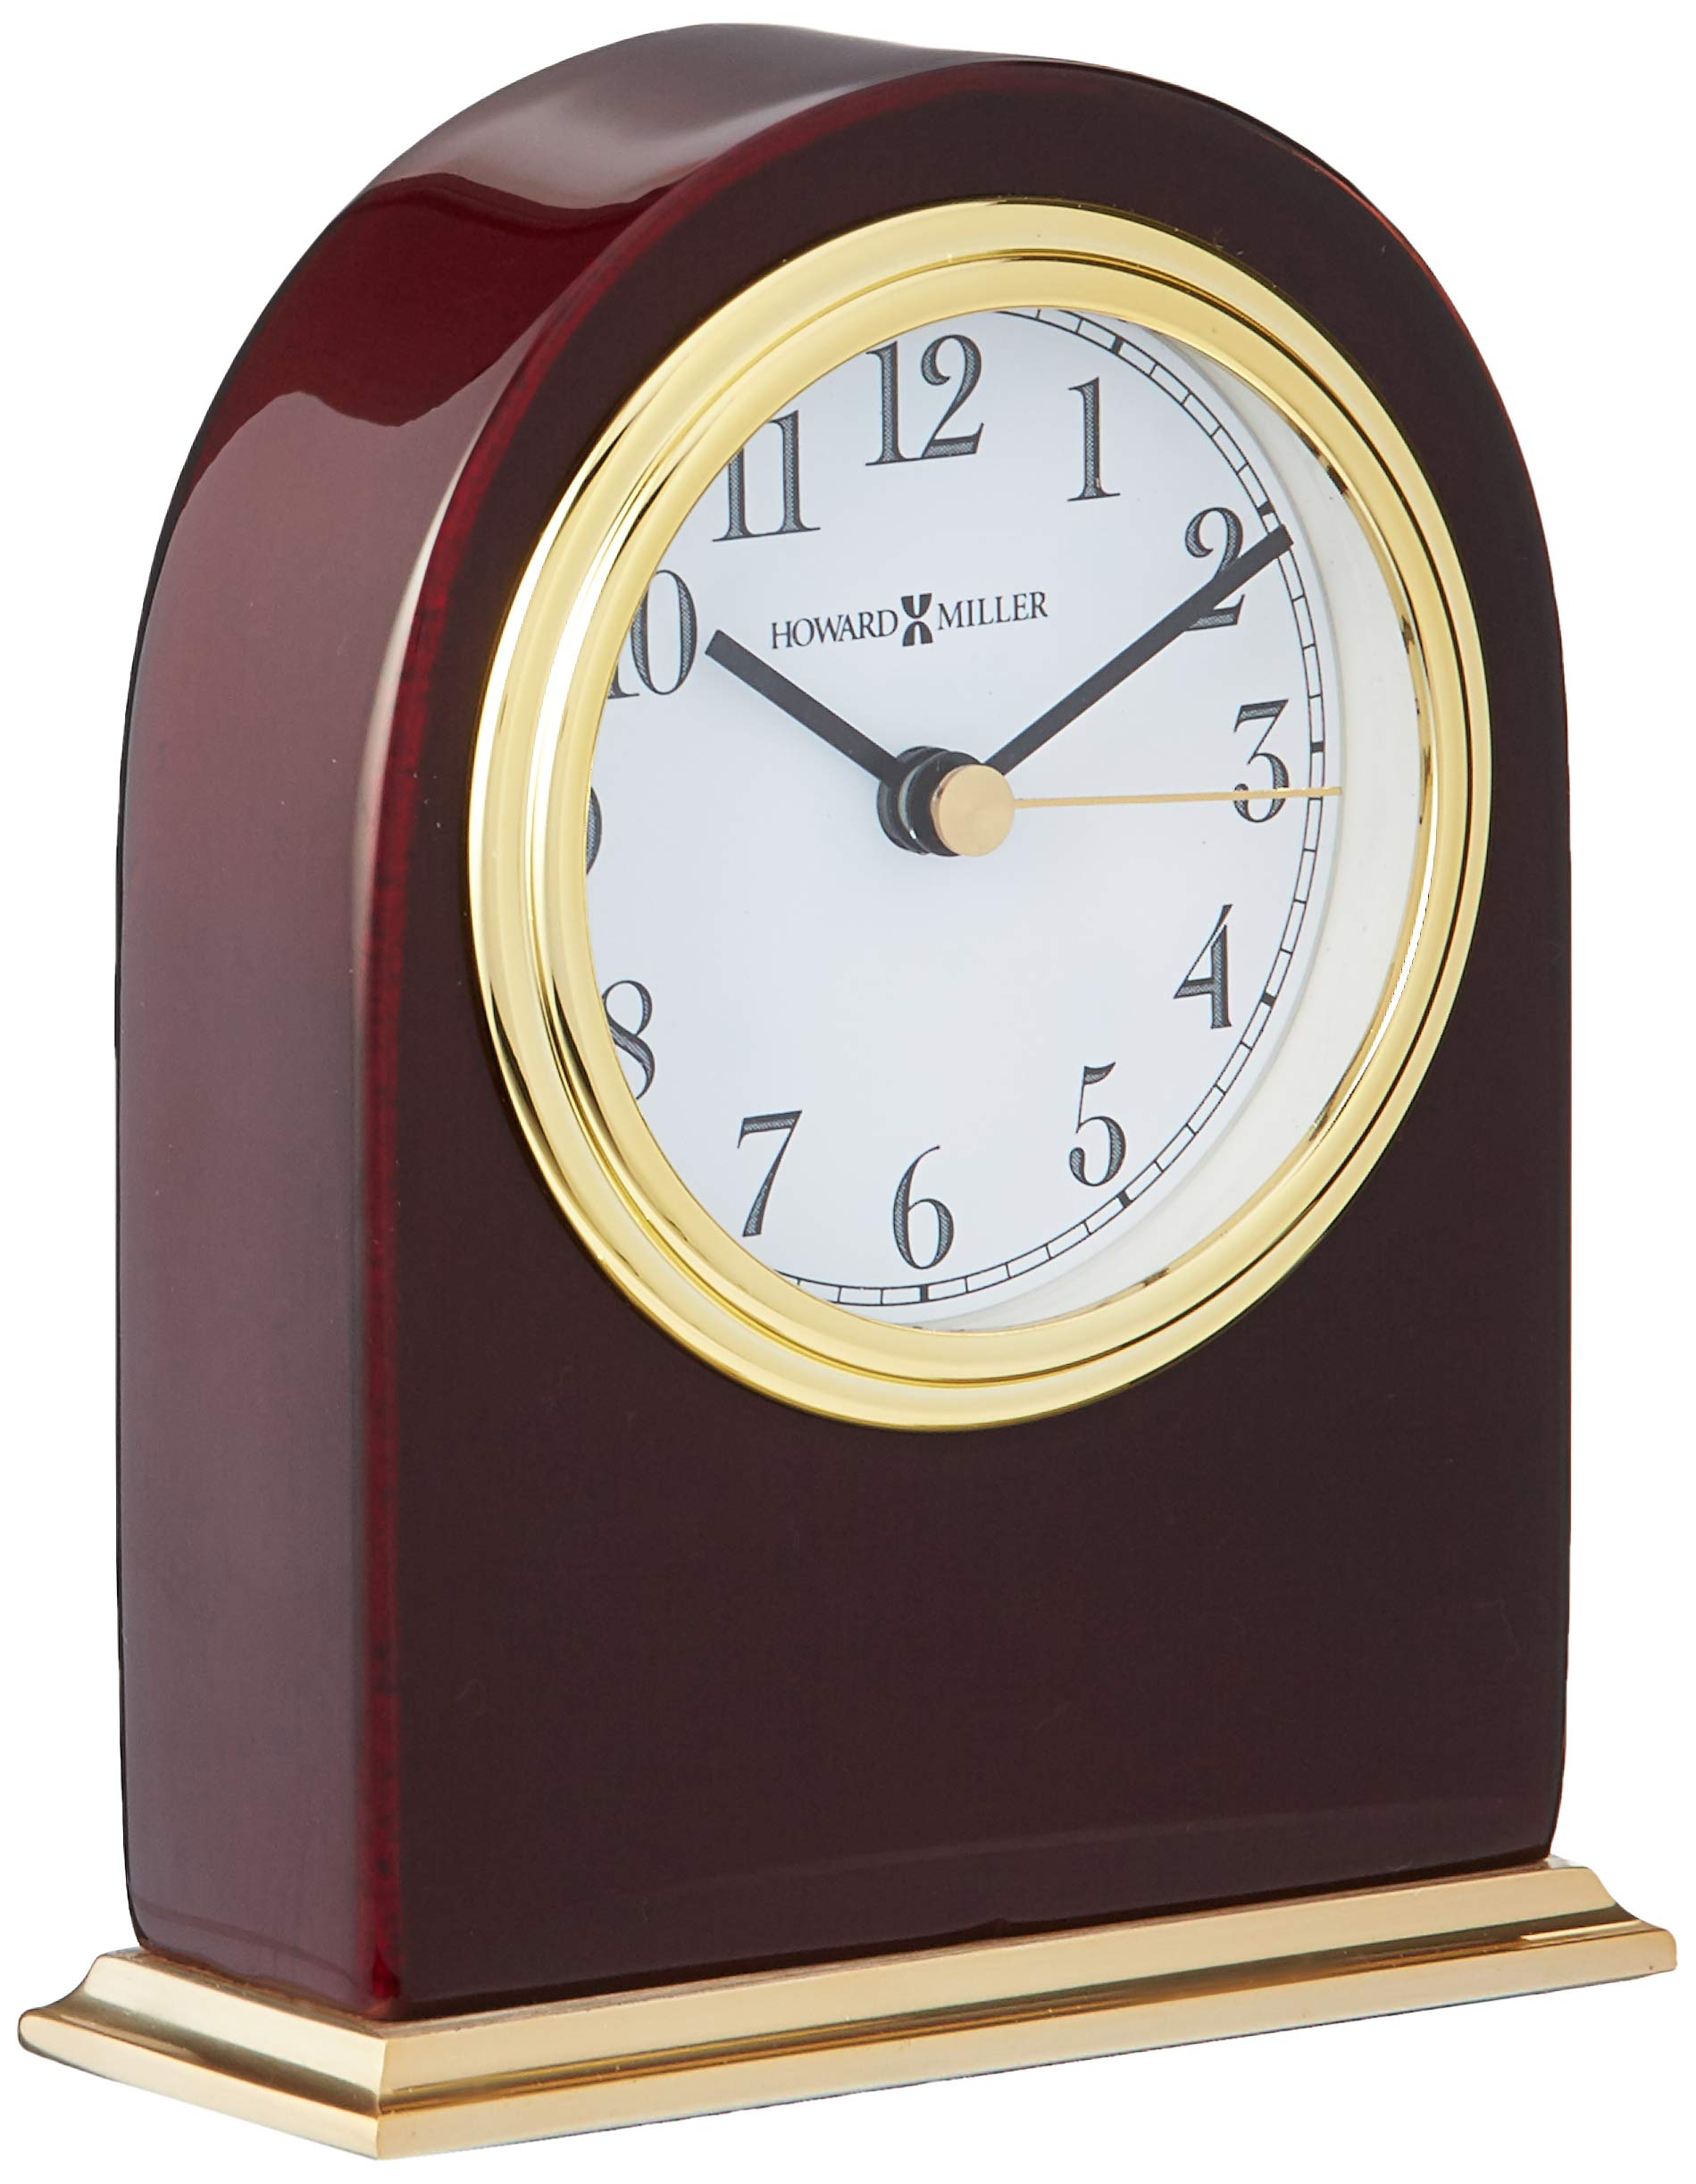 Howard Miller 645-446 Monroe Table Clock by Howard Miller (Image #2)